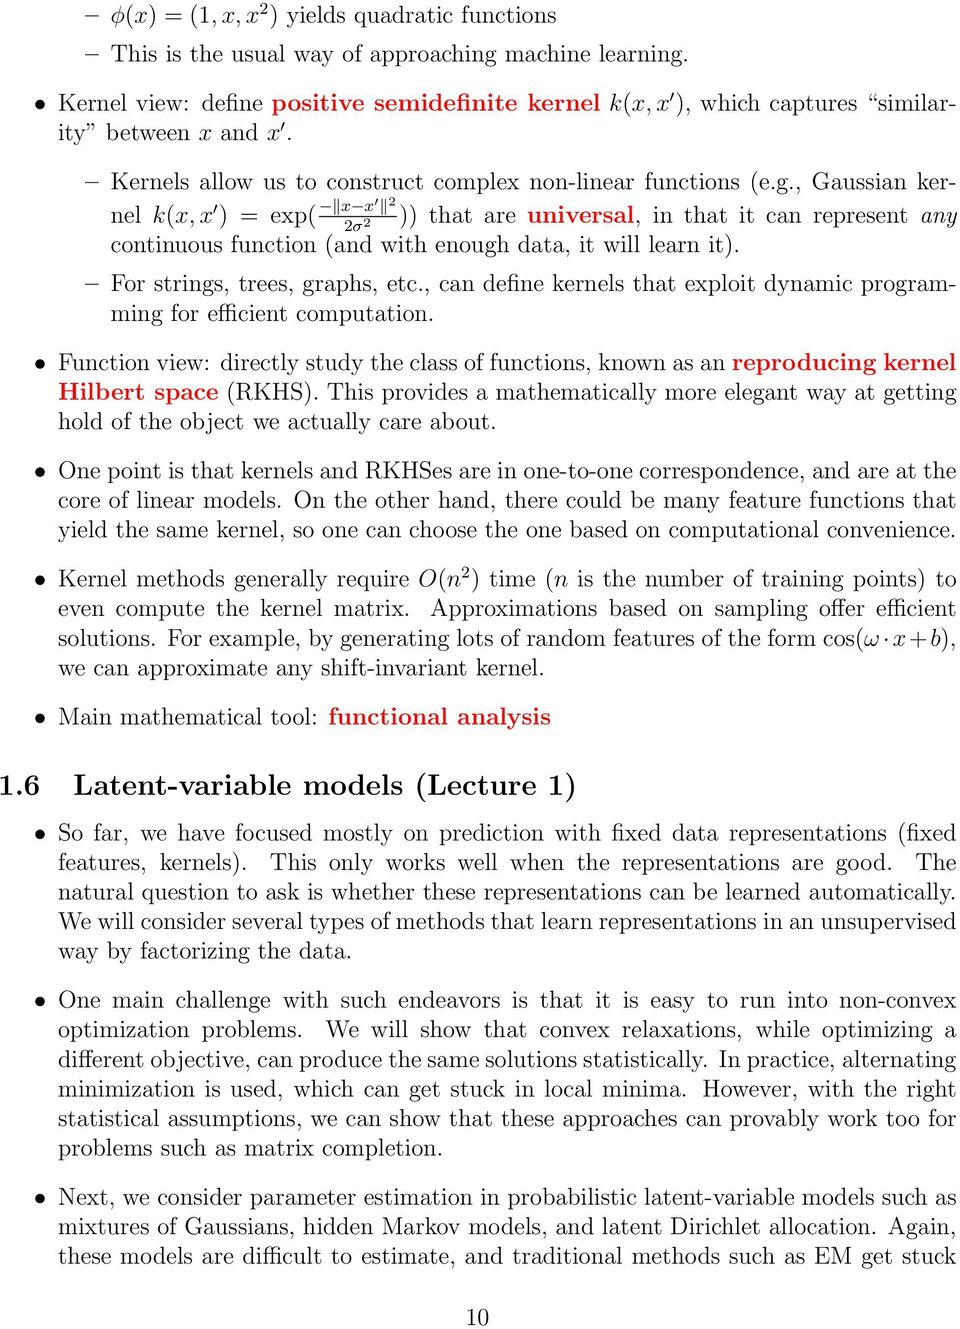 CS229T/STAT231: Statistical Learning Theory (Winter 2015) - PDF